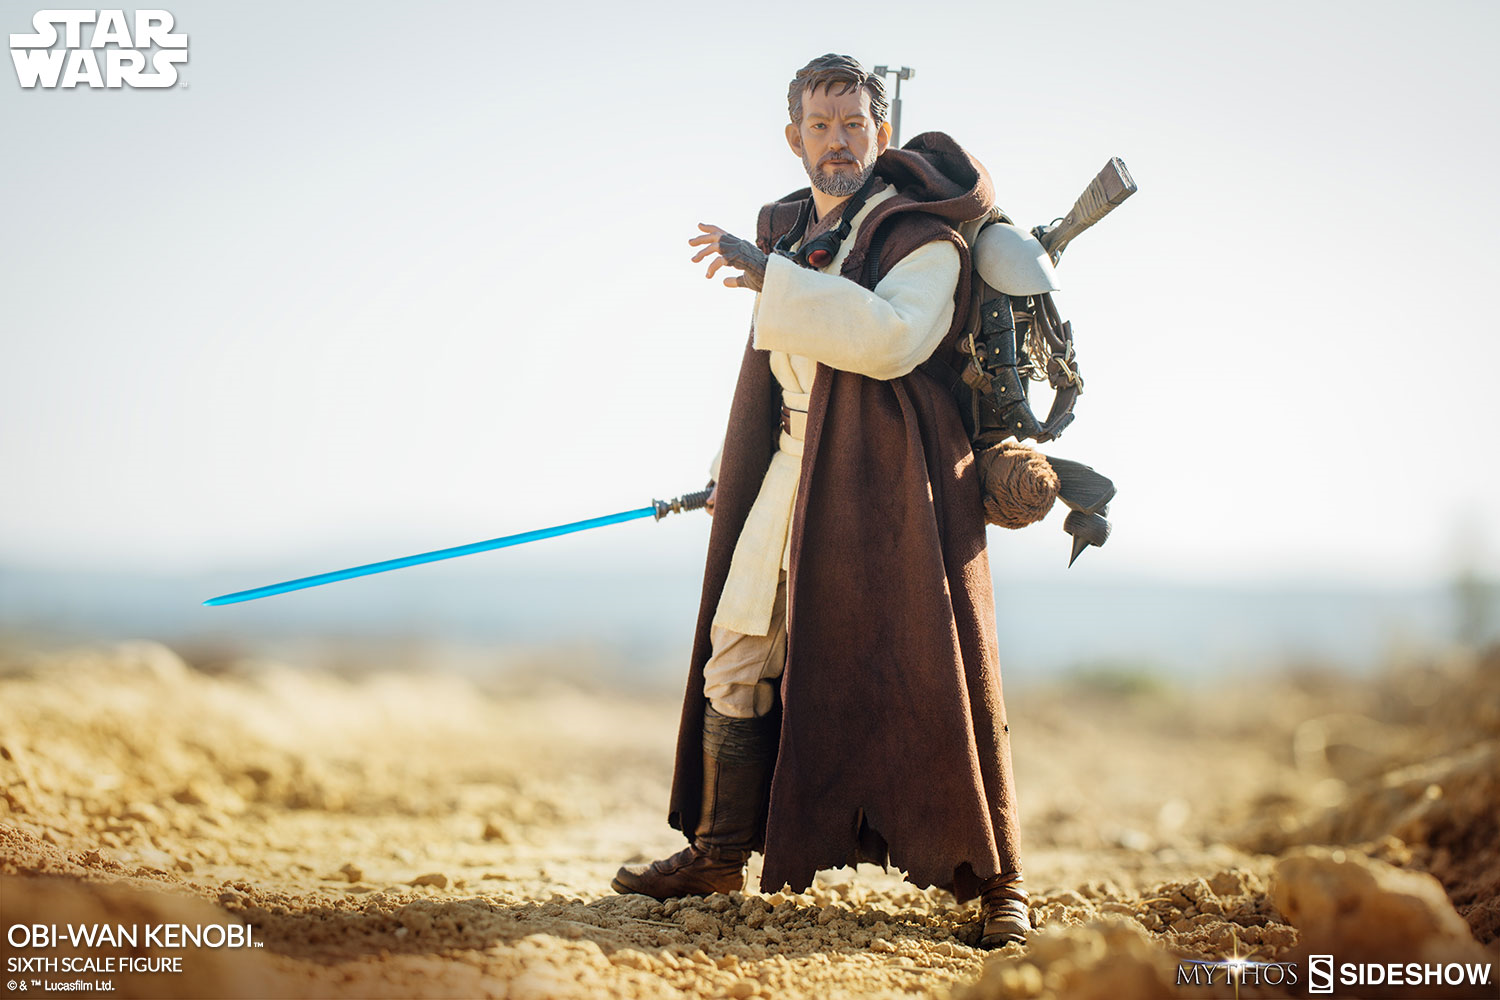 Sideshow Mythos Obi-wan Kenobi sixth scale action figure